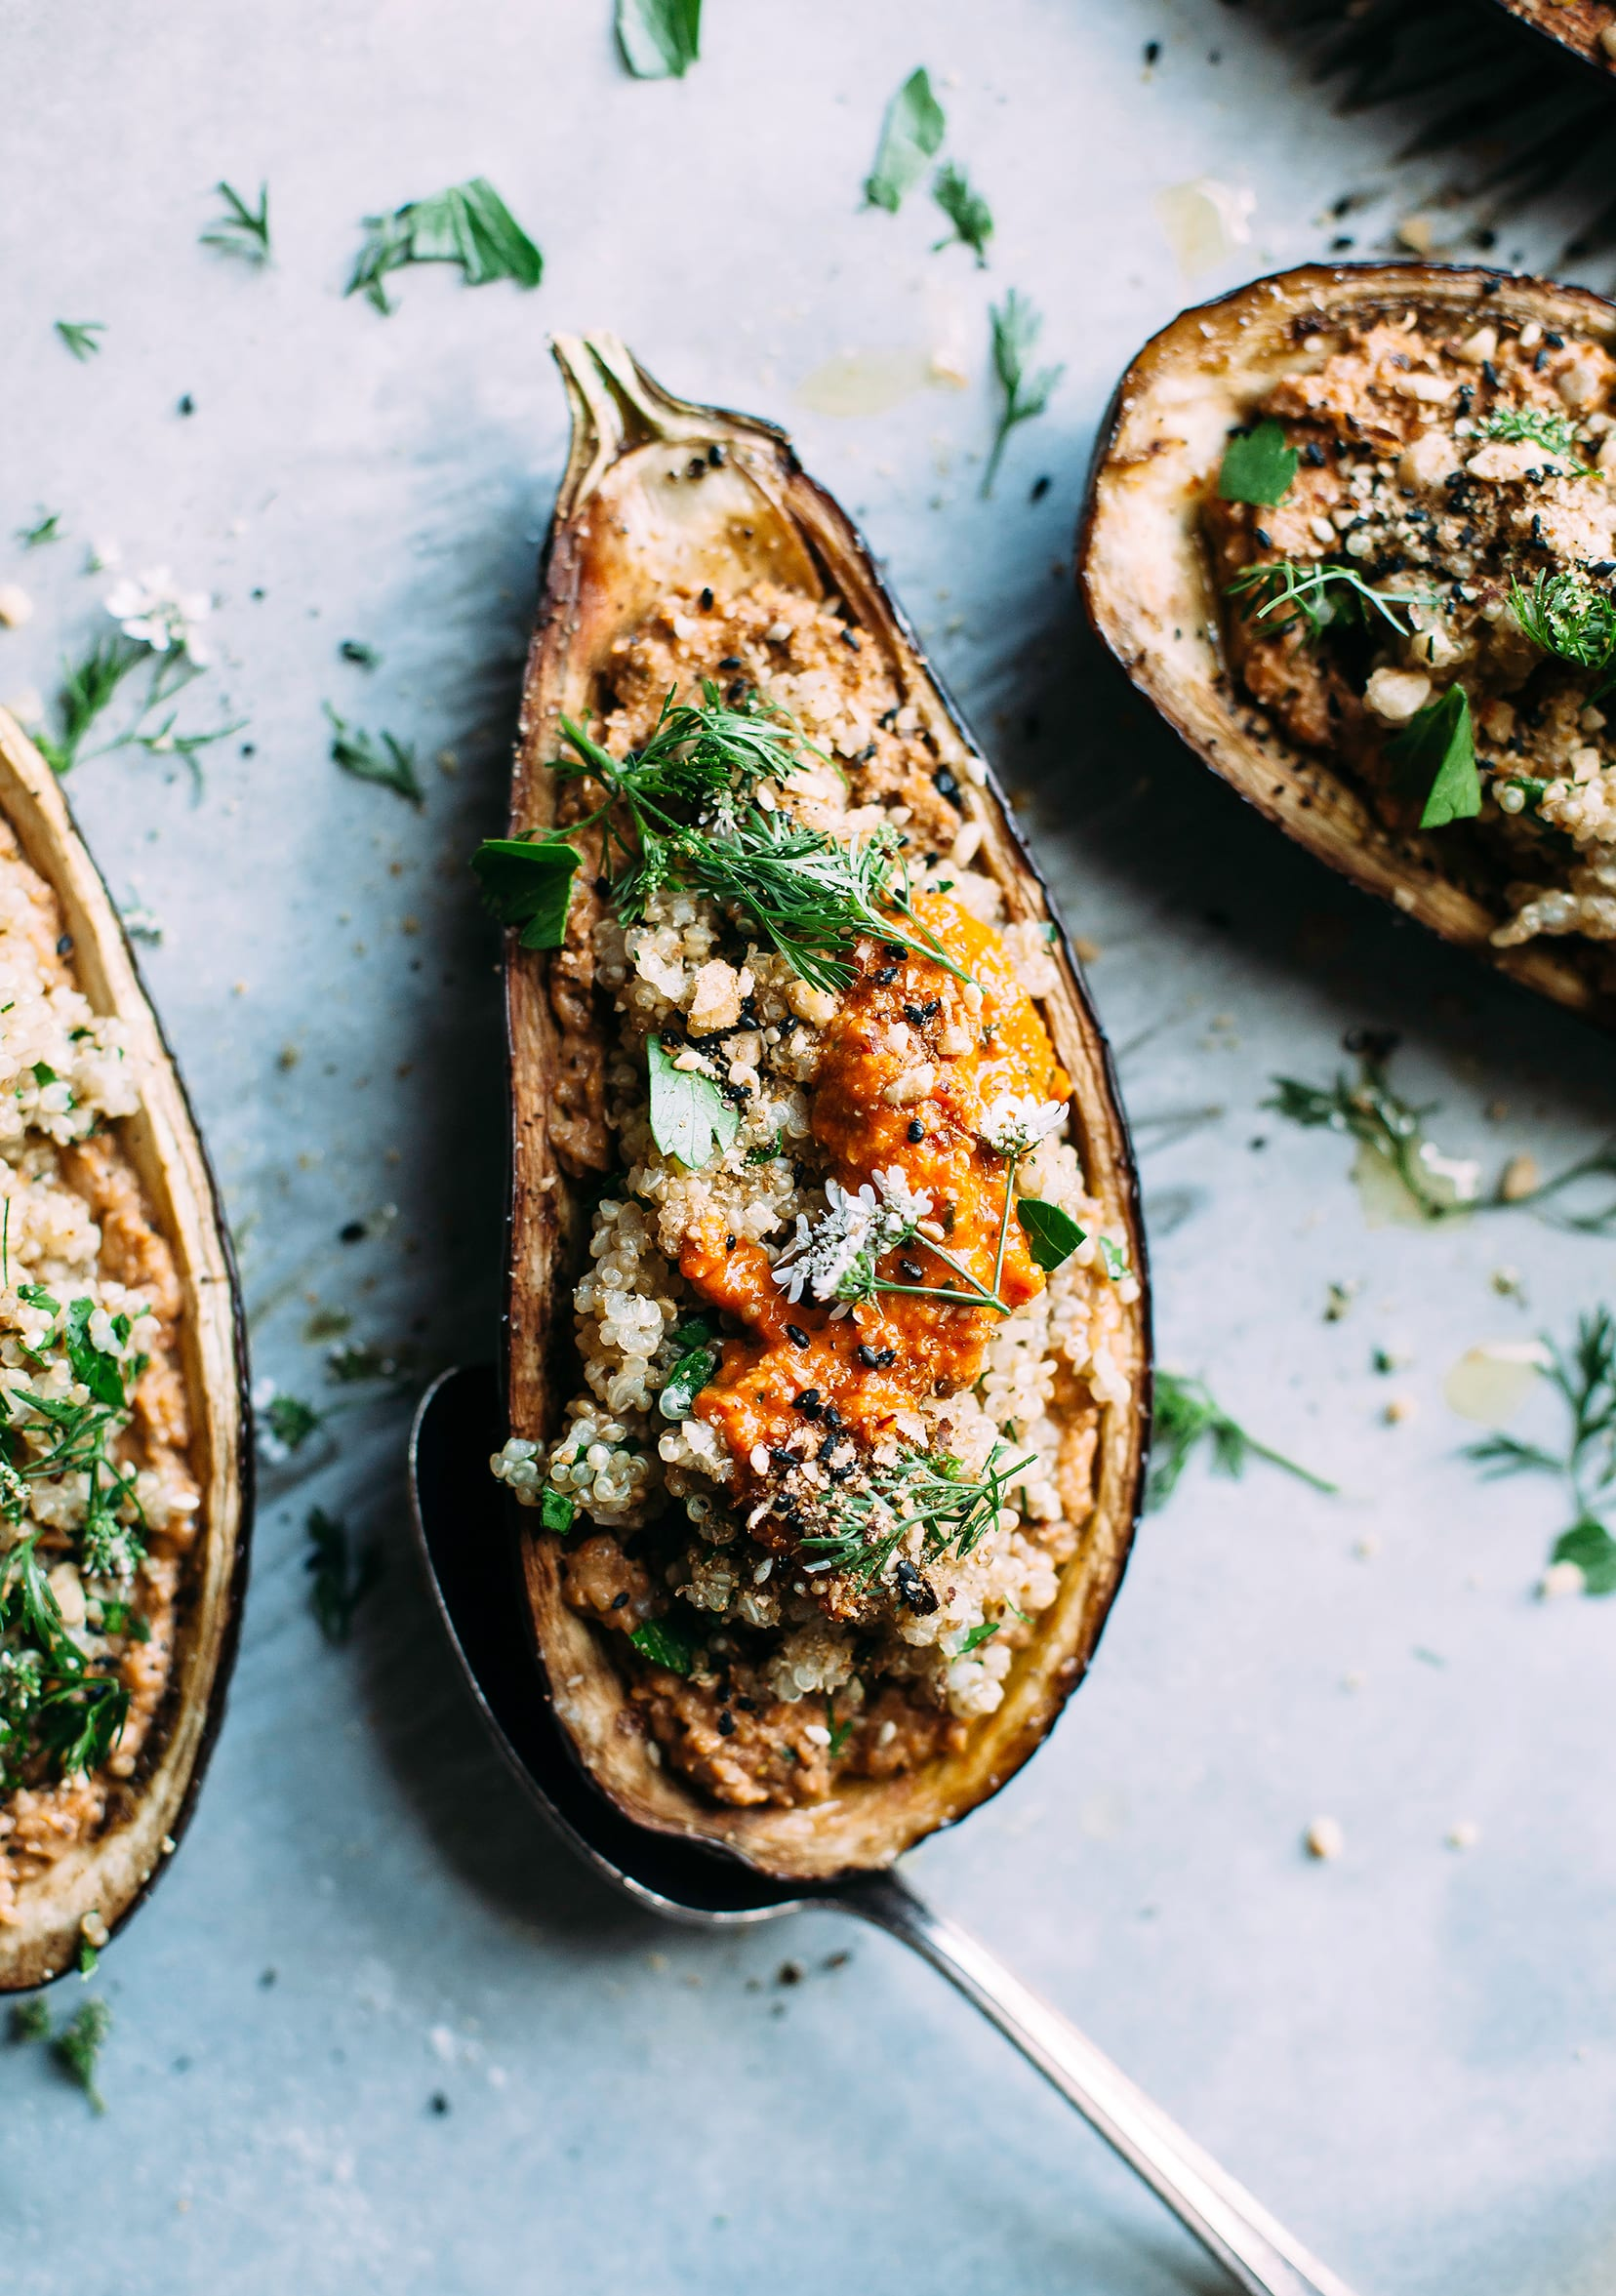 """An overhead shot of a stuffed eggplant """"boat"""" with grains inside and a dab of a deep red/orange sauce."""